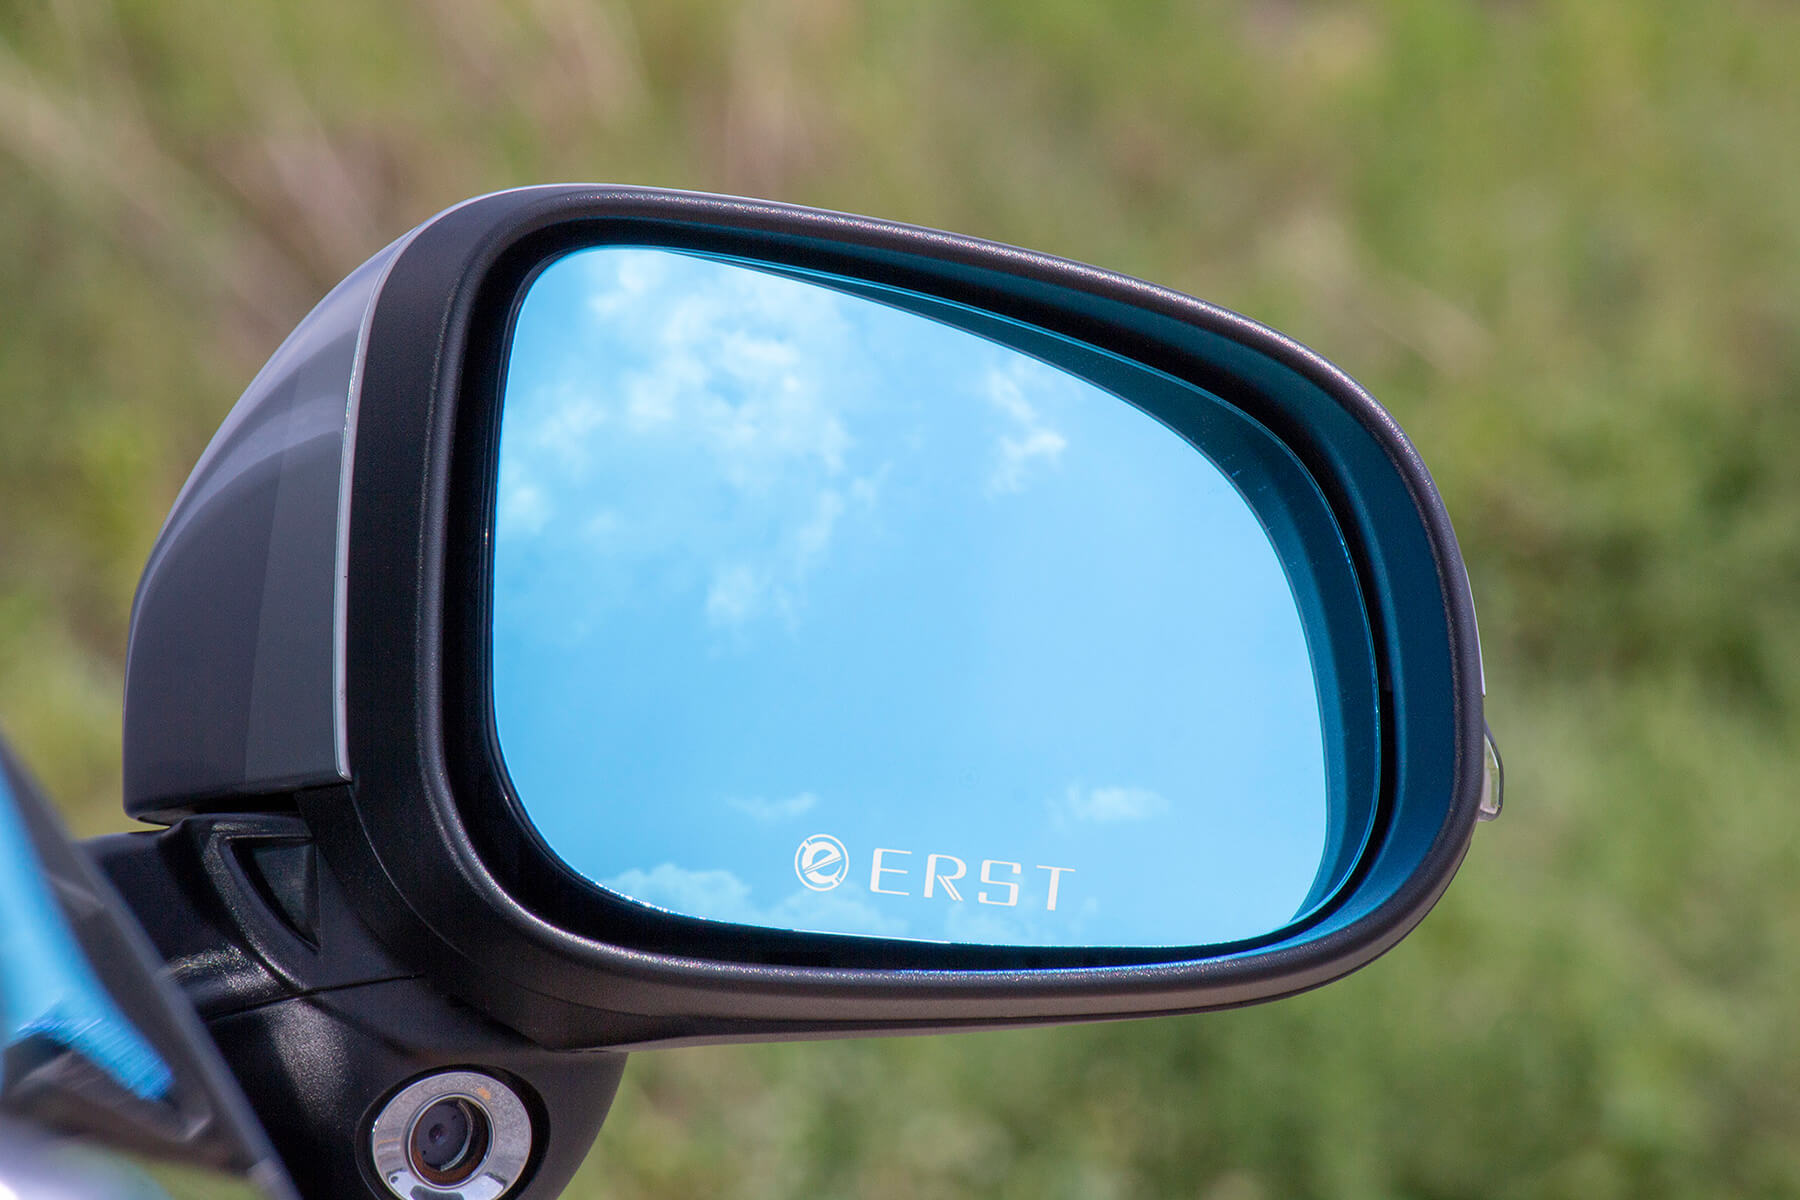 ERST WIDE ANGLE MIRROR